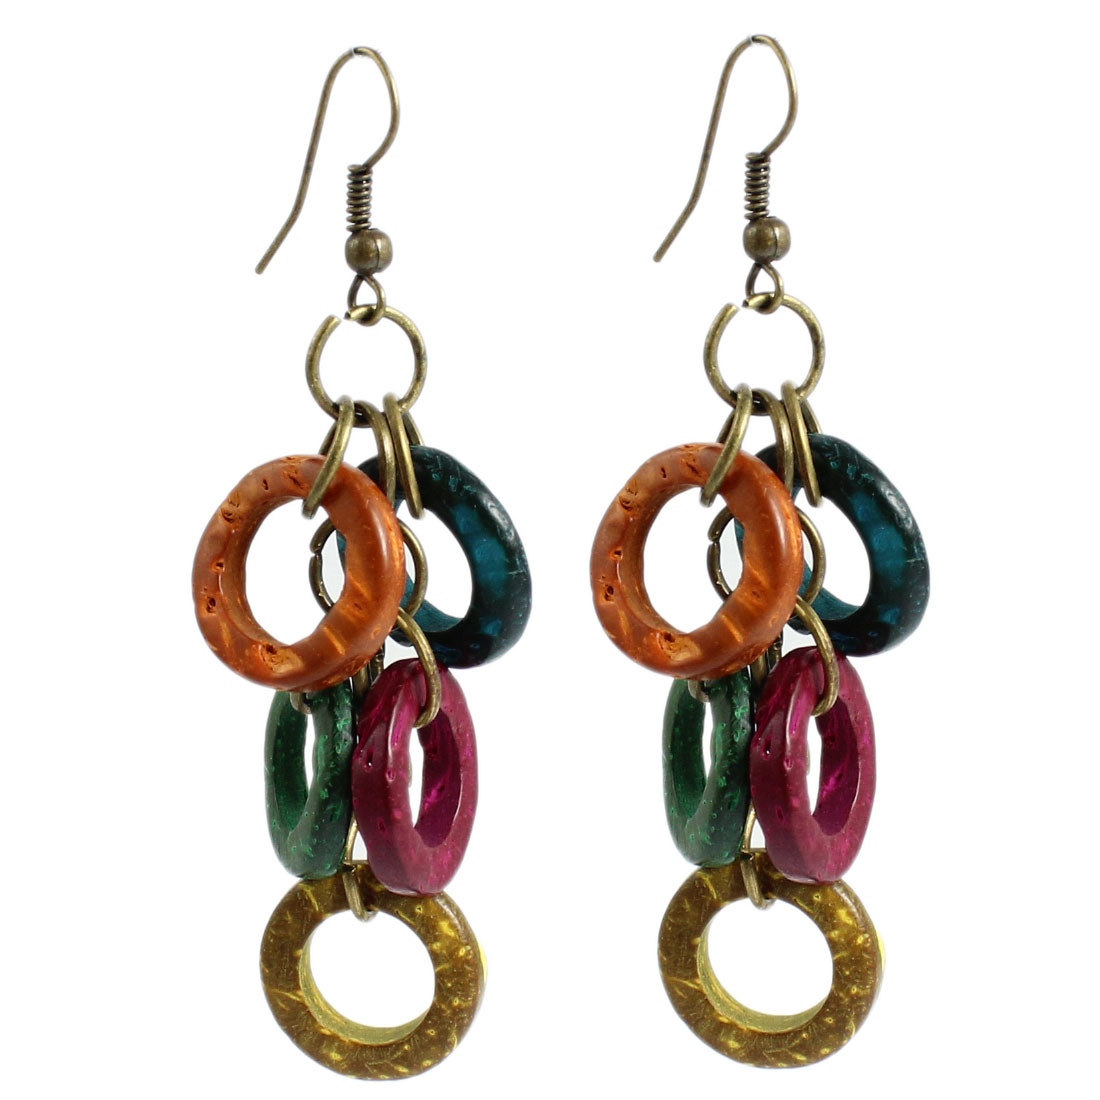 Lady Round Ring Design Wood Beads Pendant Fish Hook Earrings Assorted Color Pair